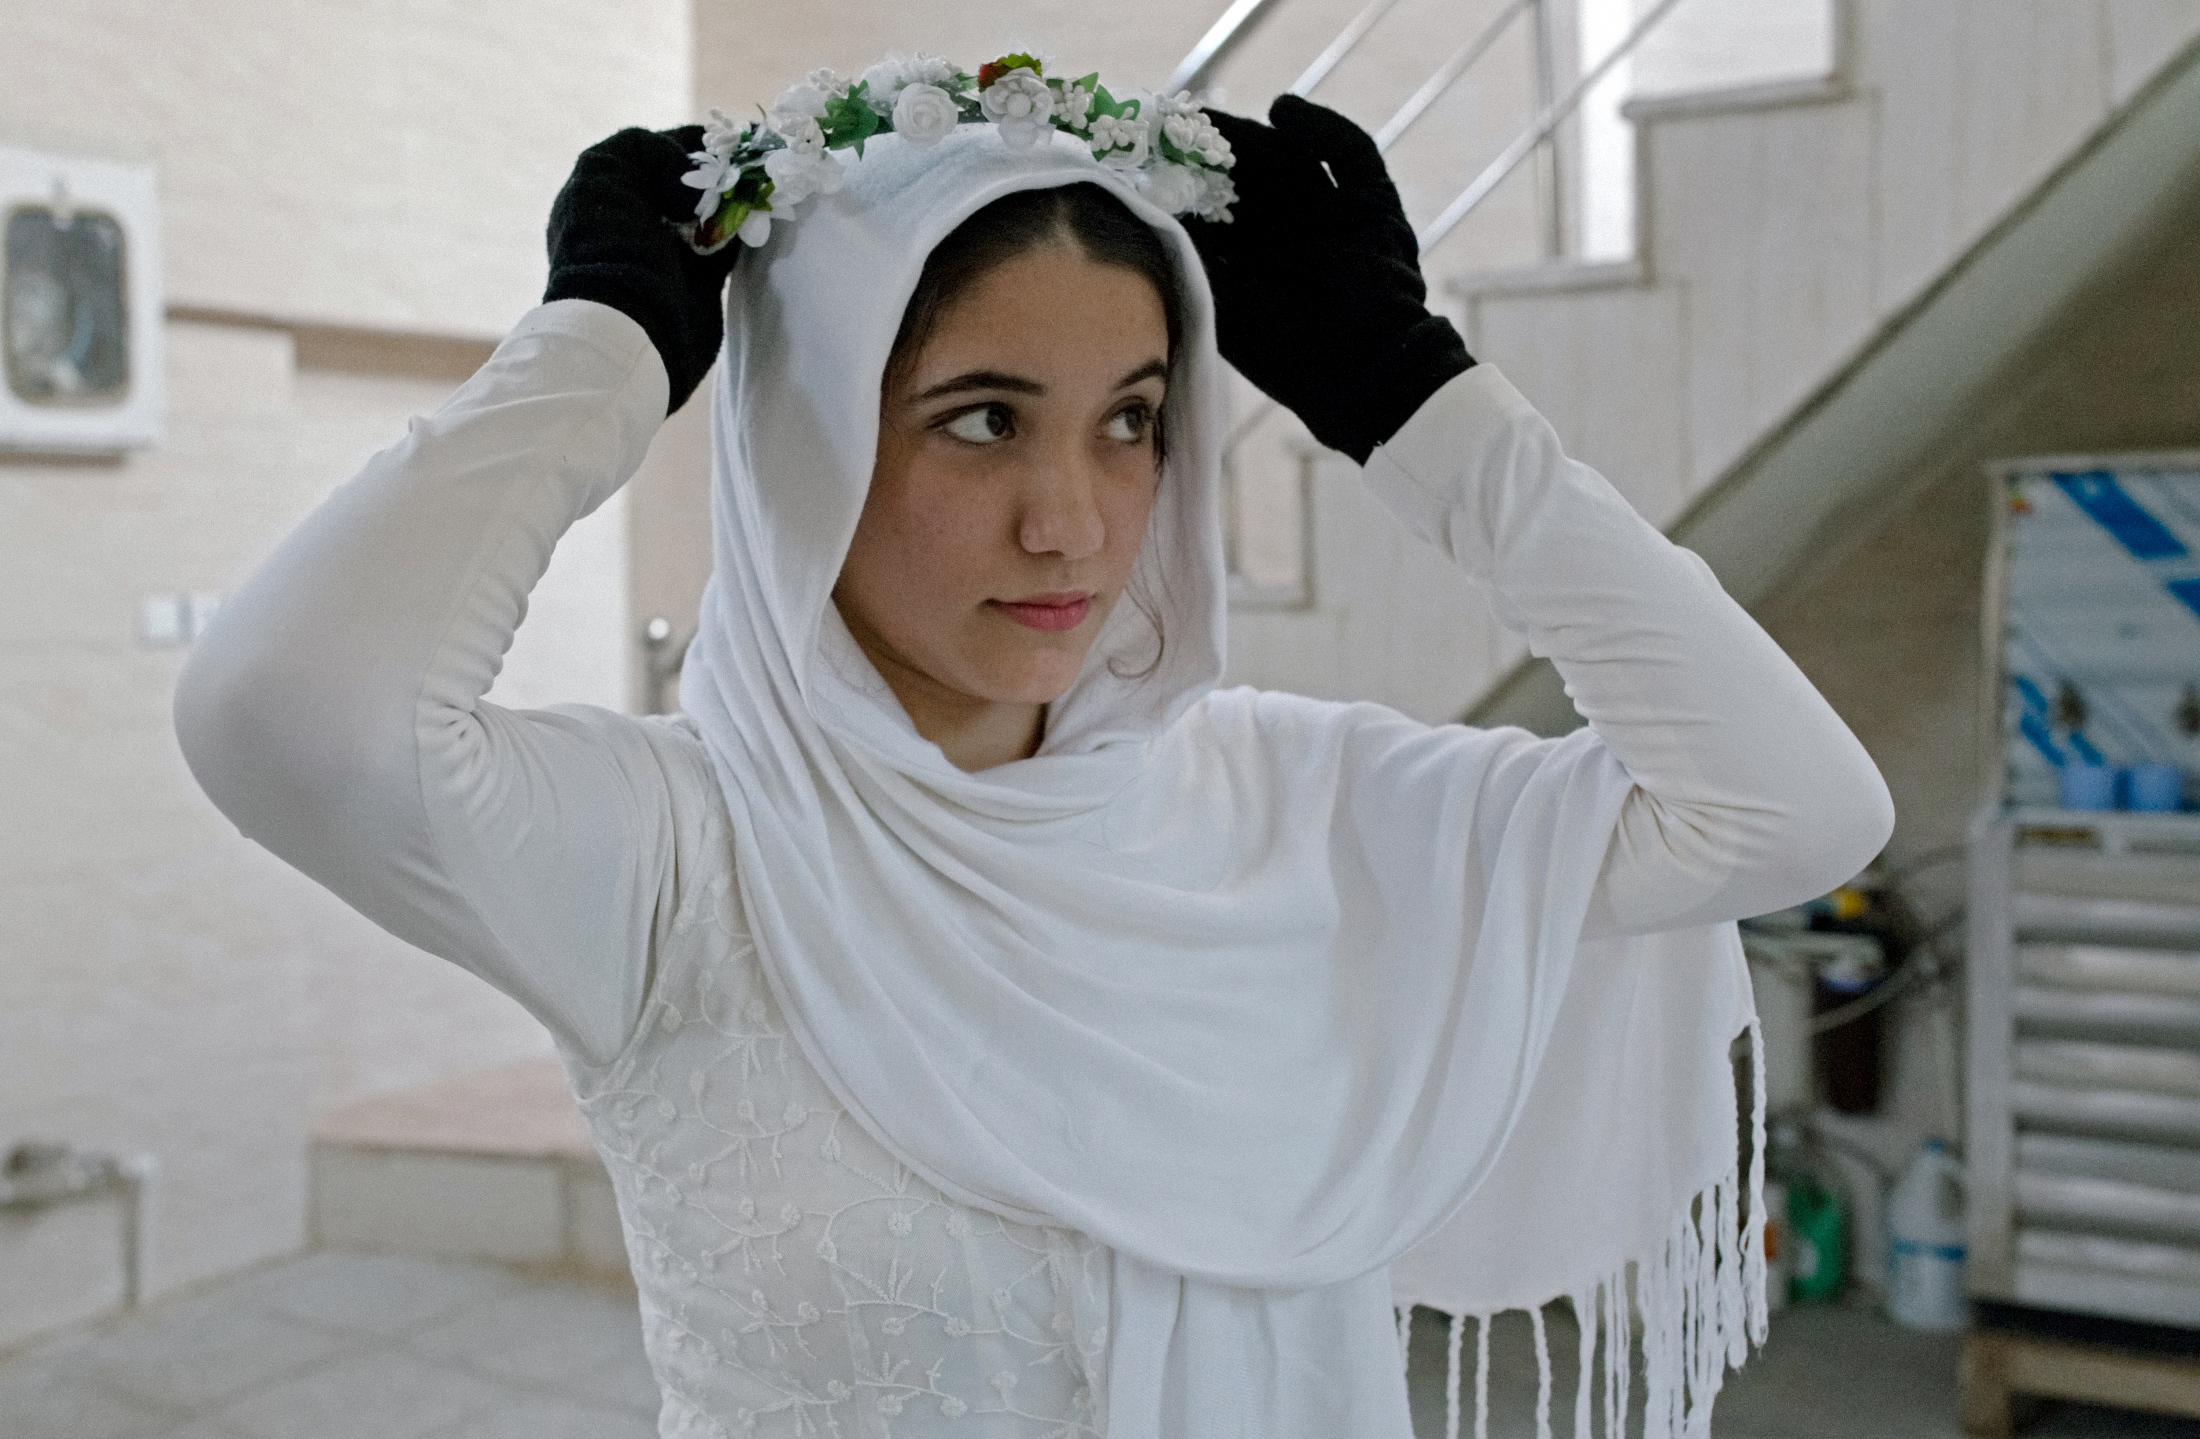 The Mandaean women wear gloves throughout their menstrual cycle; water figures prominently in their rites. Still, the stigma inhibits their lives in Iran in a very visceral way. Ahvaz, Iran.2016